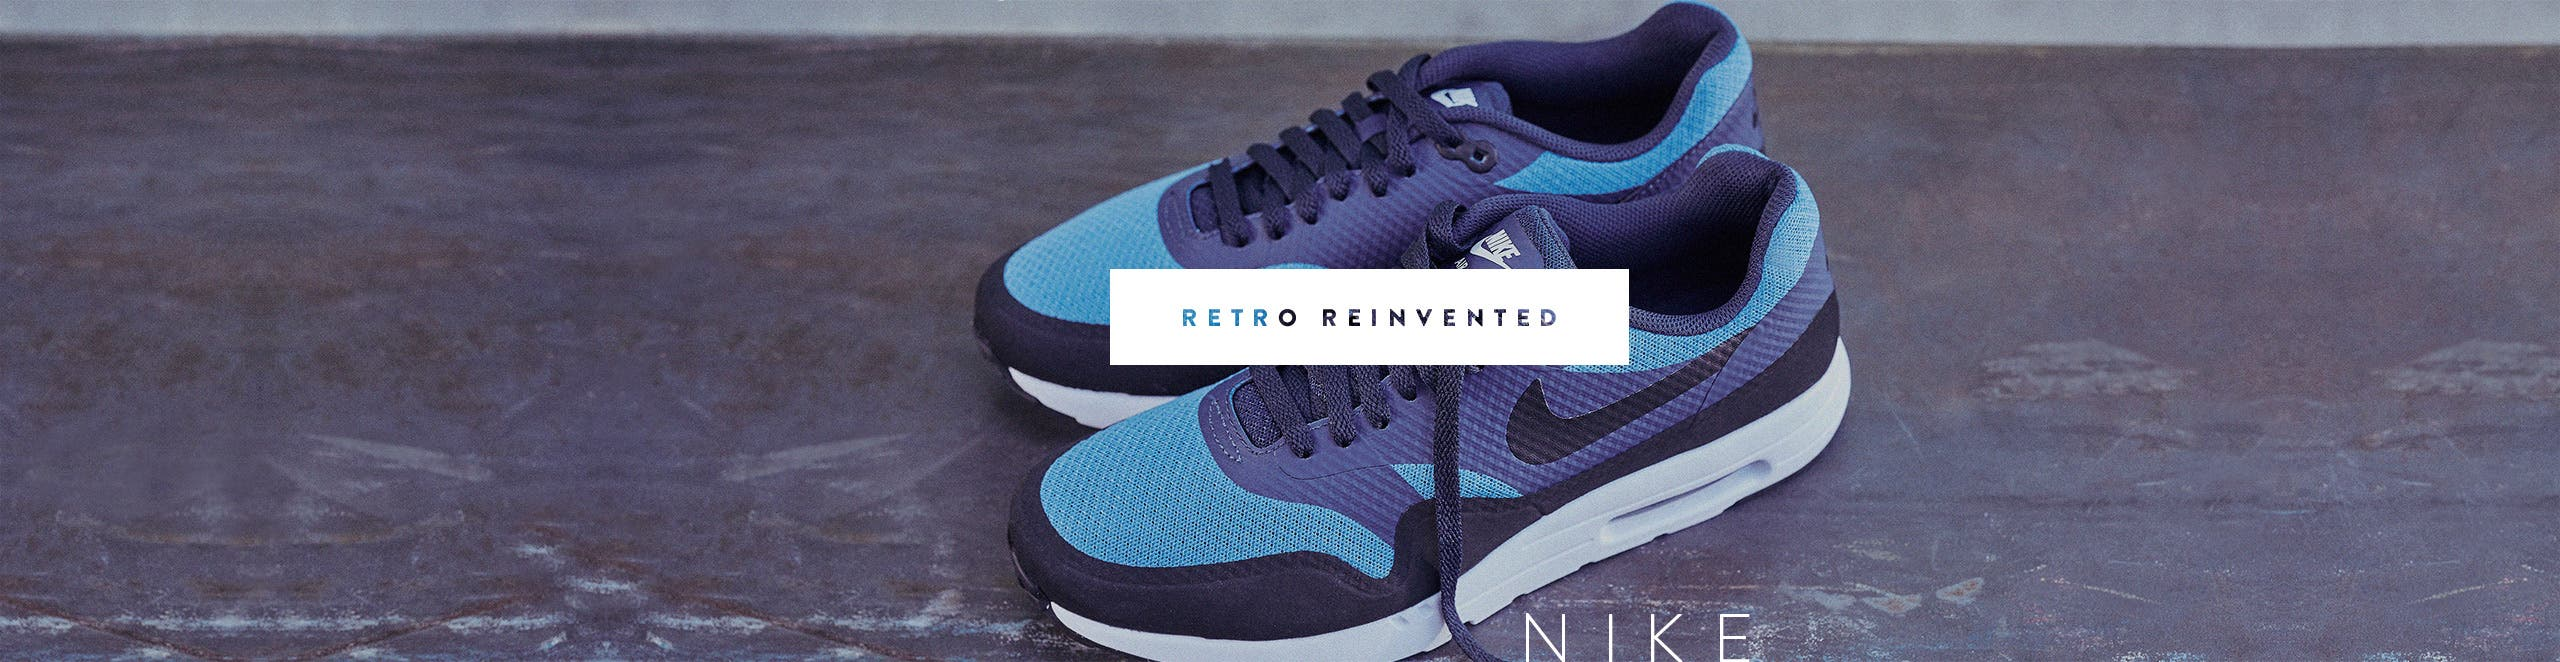 Nike men's shoes reinvent retro.